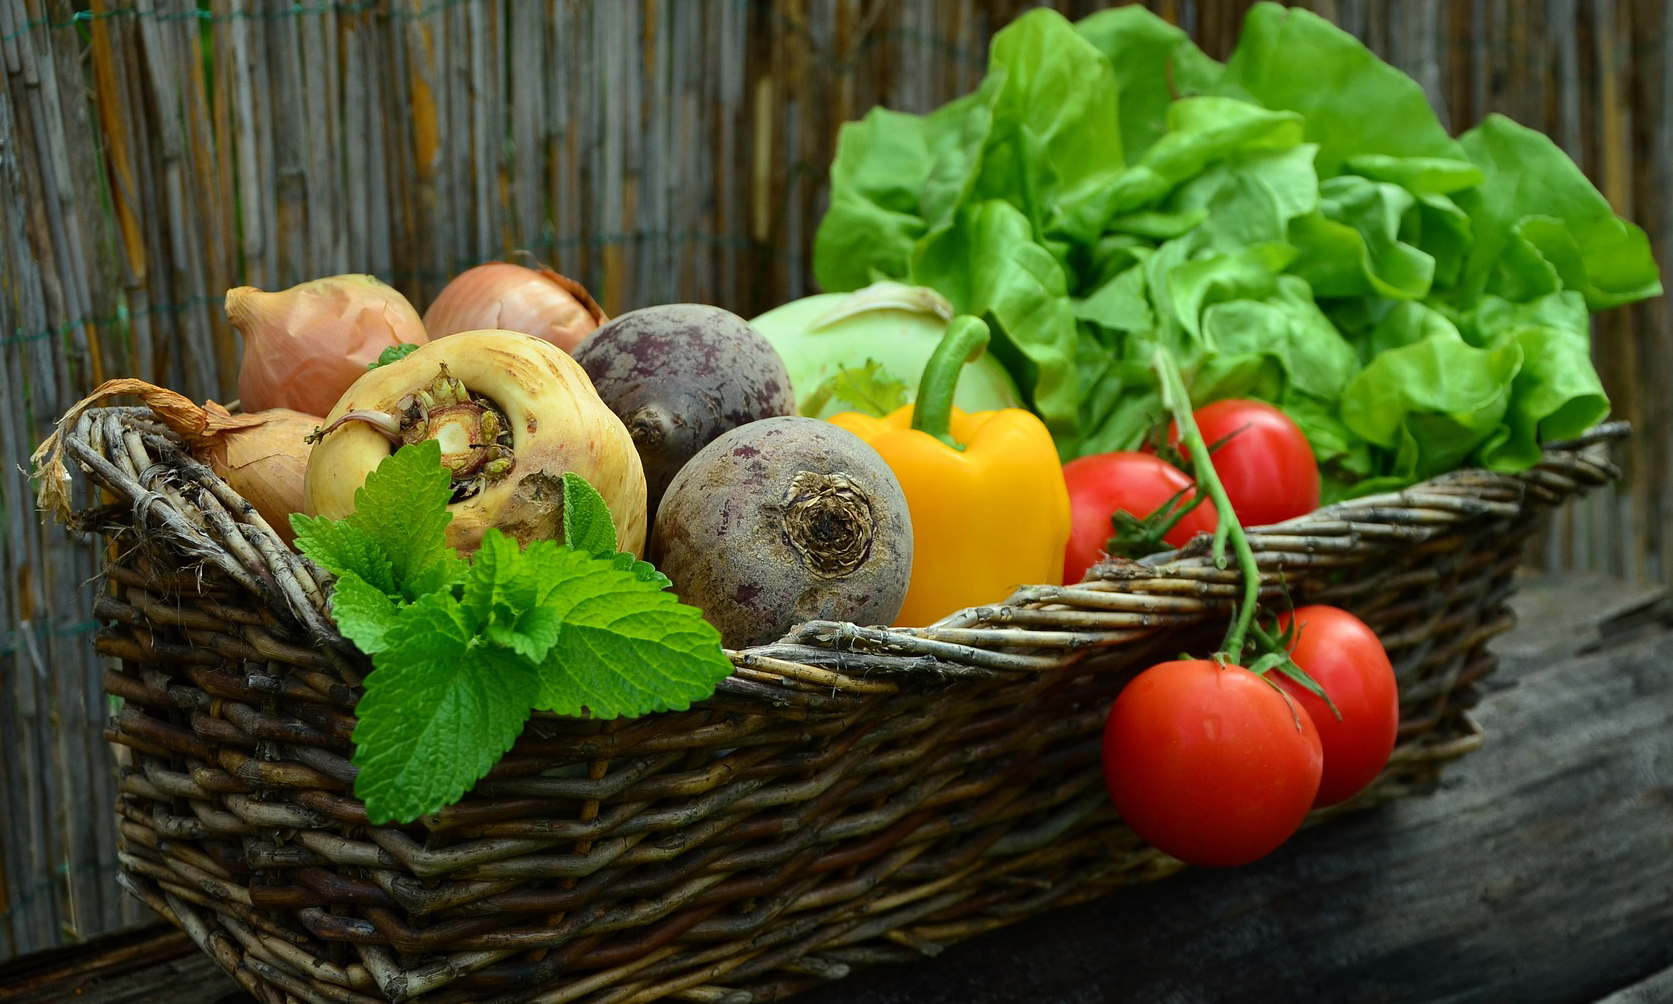 Assortment of fresh fruit and vegetables in a basket.